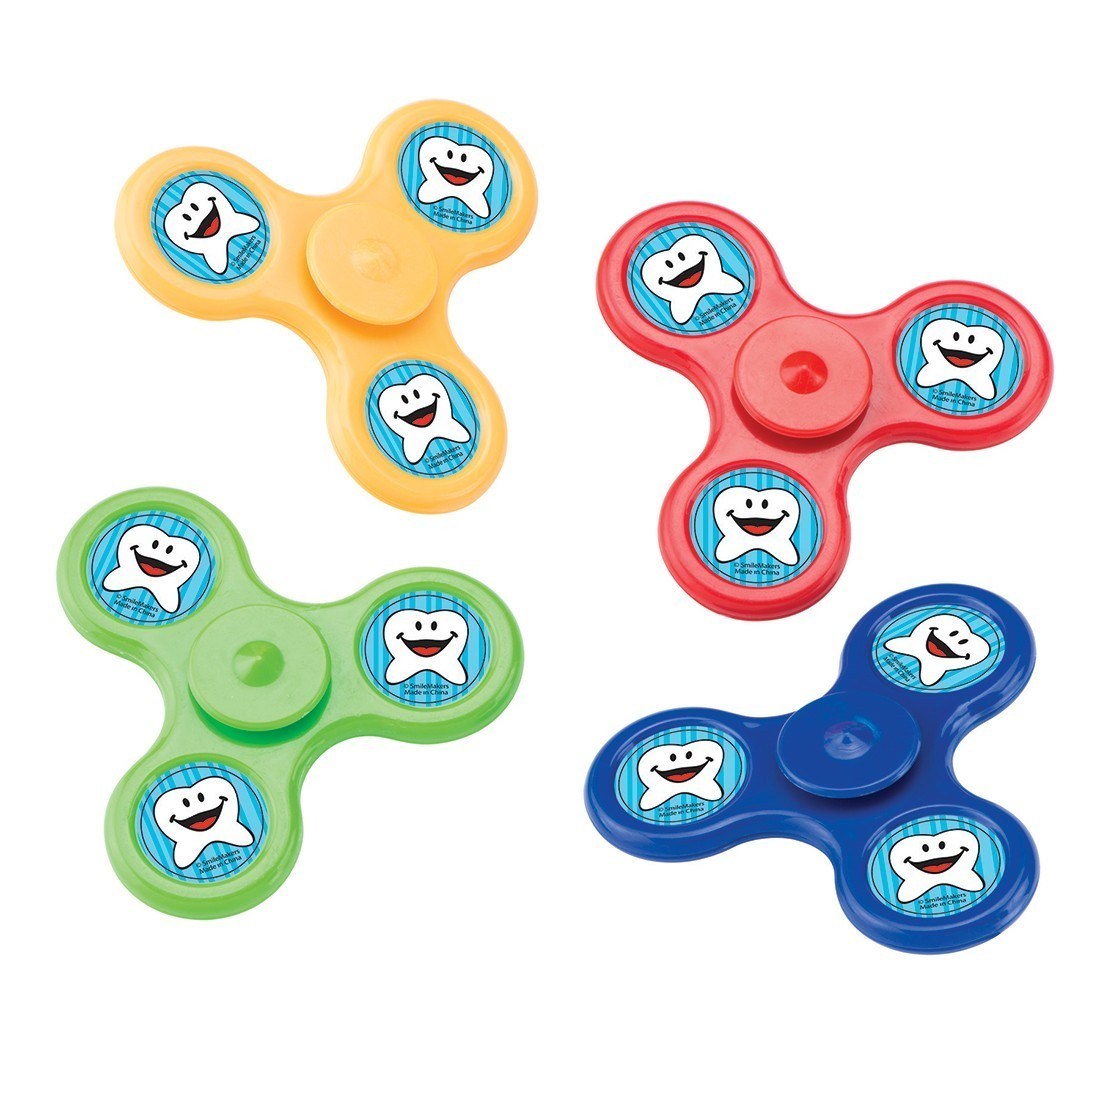 Happy Tooth Fidget Spinners  [image]